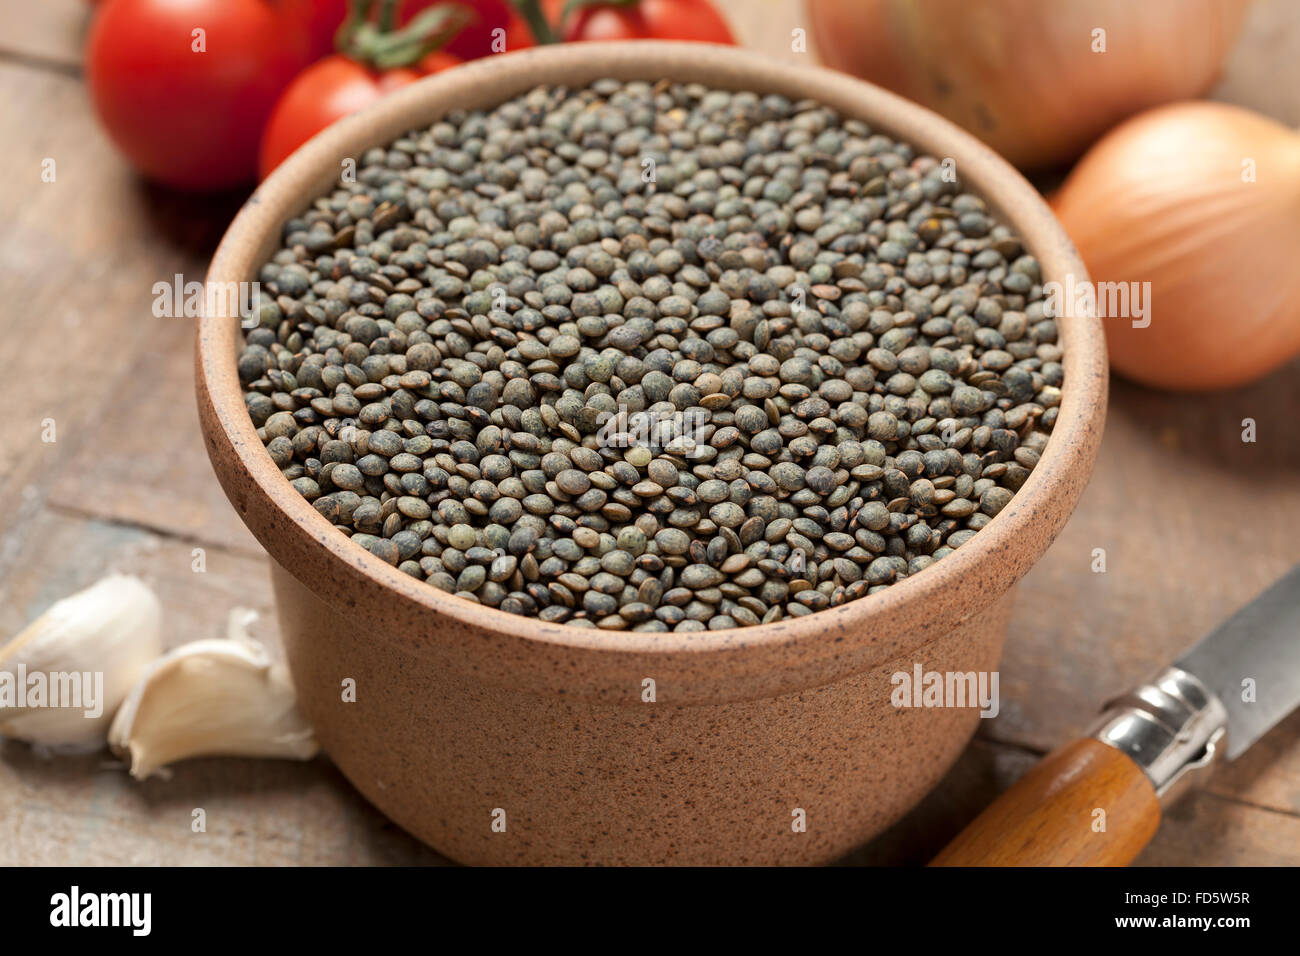 Dried Du Puy lentils in a bowl - Stock Image